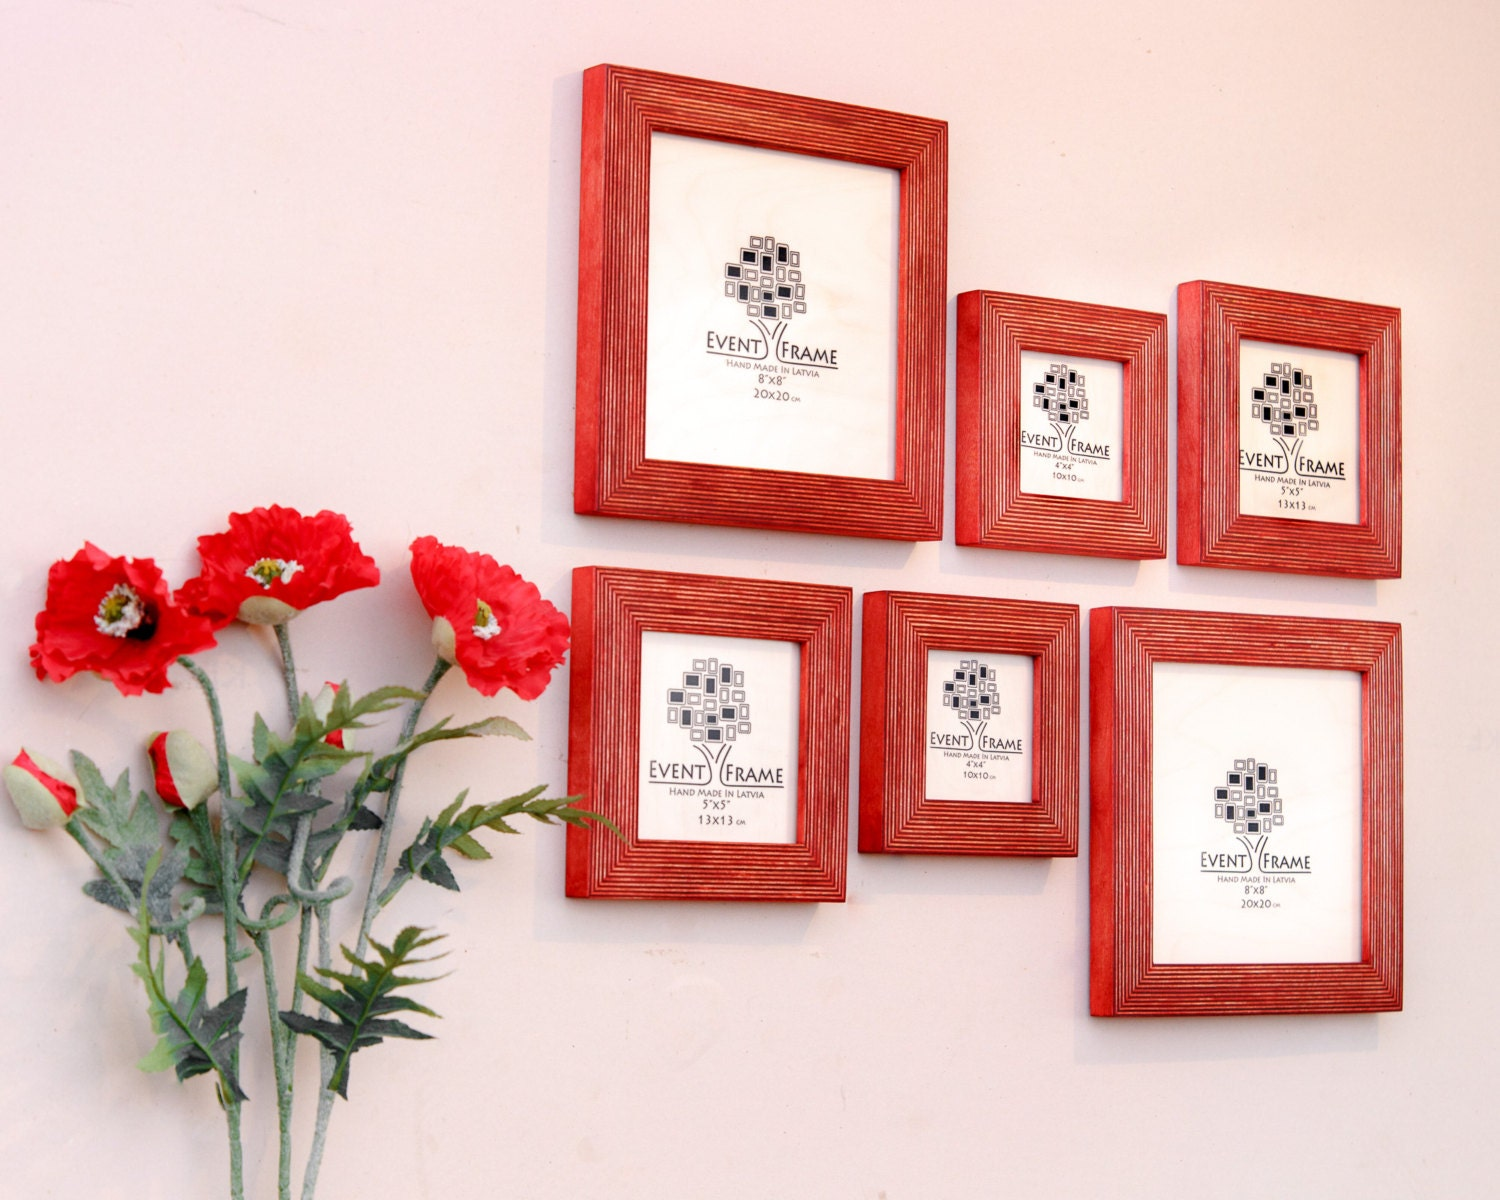 Gallery wall picture frame set of 6 square photo frames size 8x8 12500 jeuxipadfo Image collections